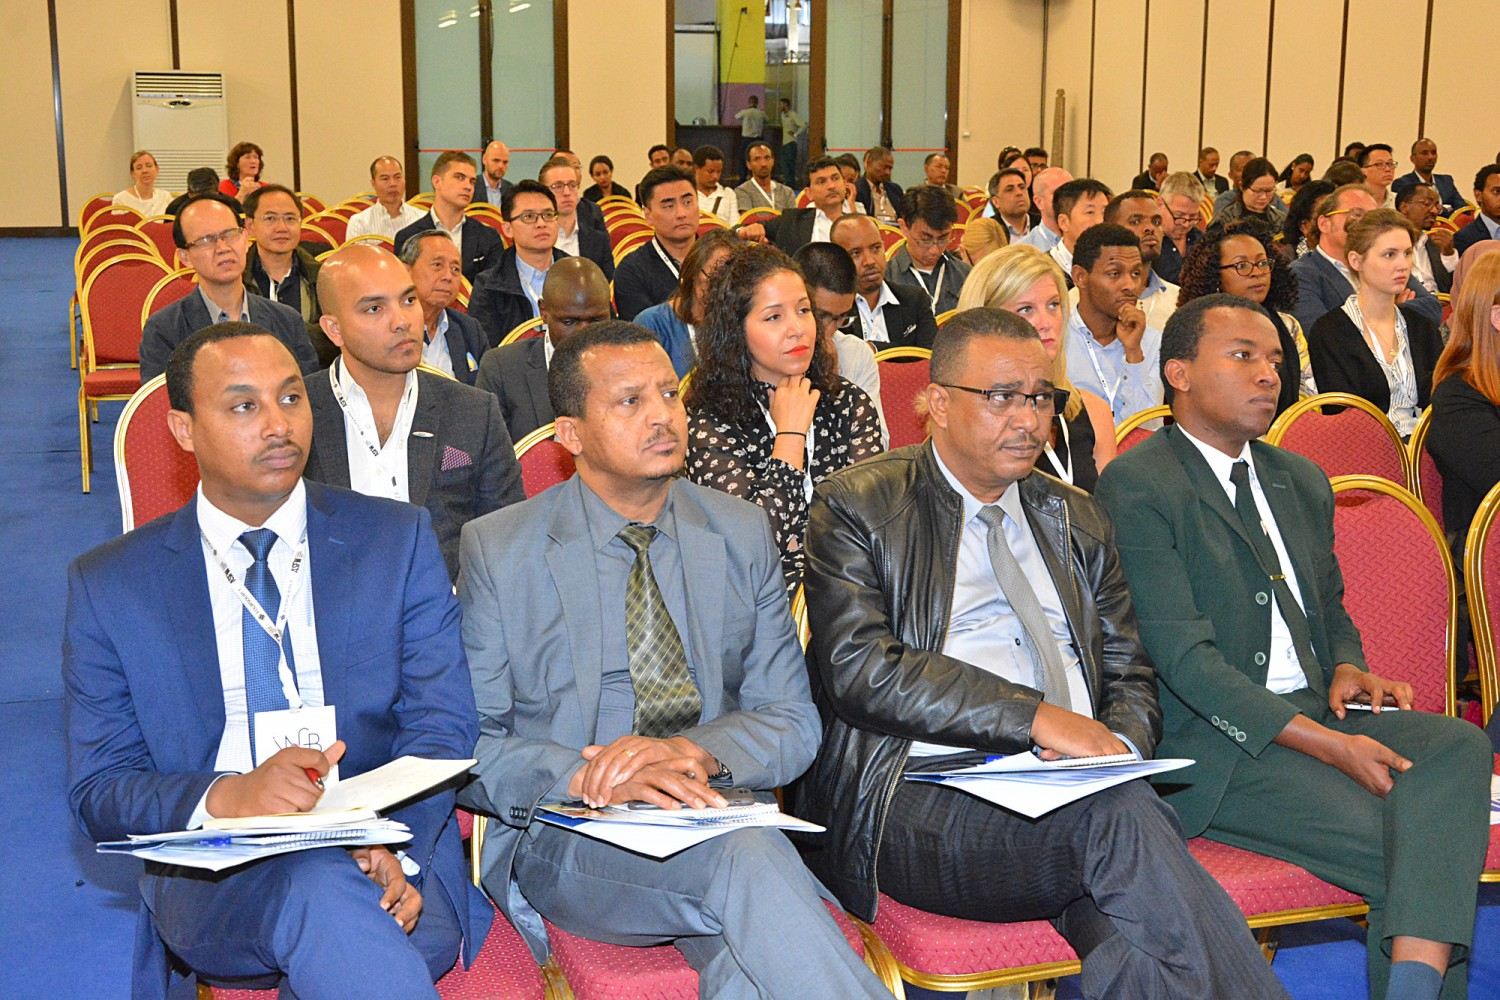 ASFW's conference takes up the topic of investment by a panel presented by the government of Ethiopia. © ASFW